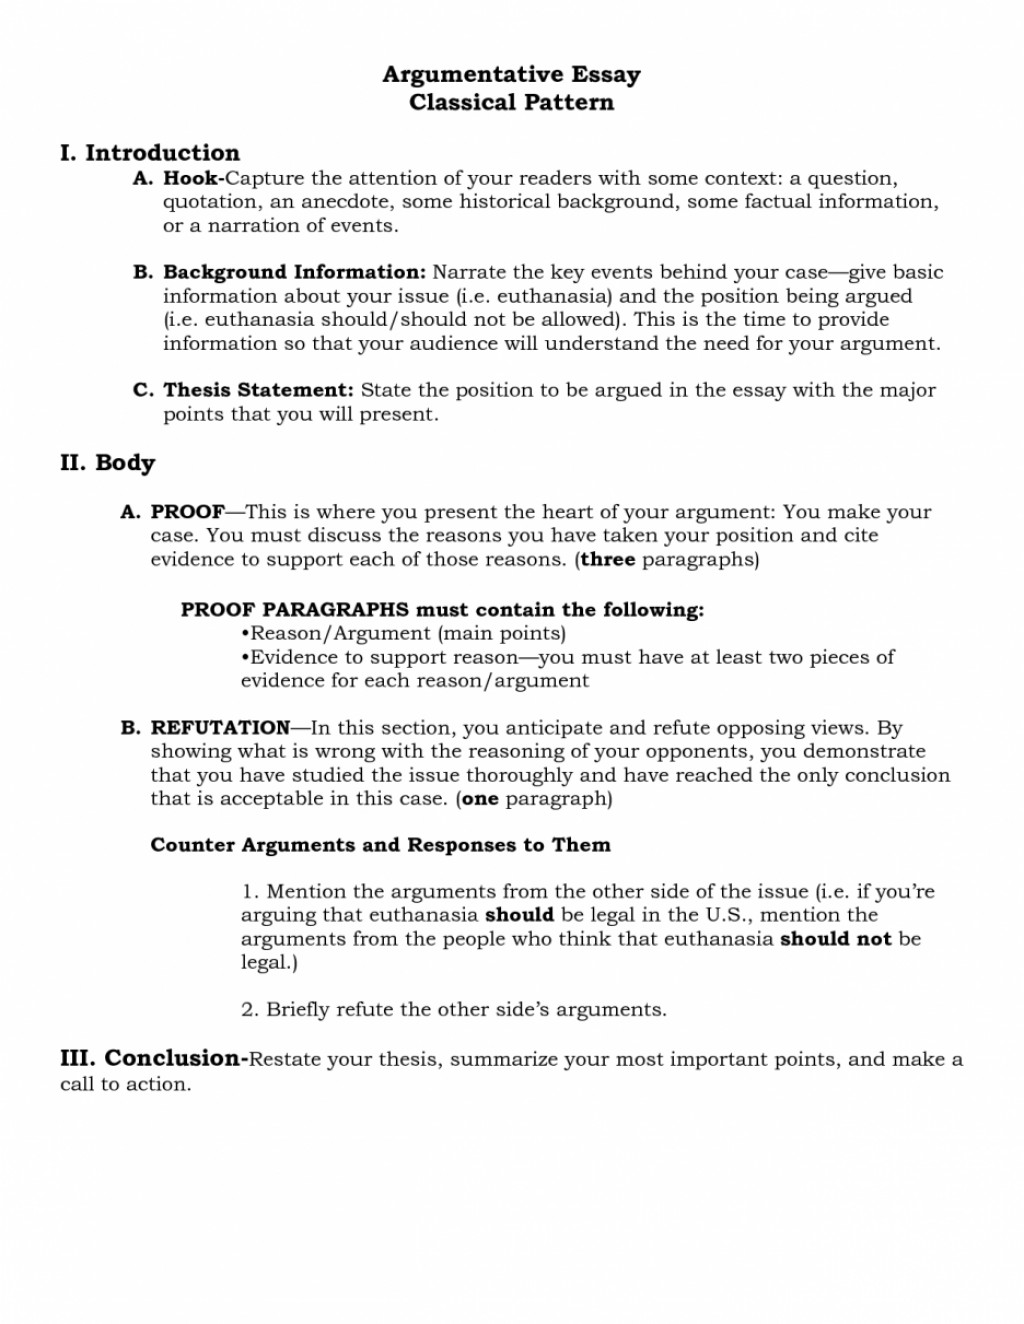 010 Essay Example Argumentativetructure Format Mla Apa Of An Argument Pdf Cosmolgical Outline 8th Grade Rogerian Researched College Examples For Middlechool Toulmin Debateingapore 936x1211 Breathtaking Structure Argumentative (advanced Module) Large